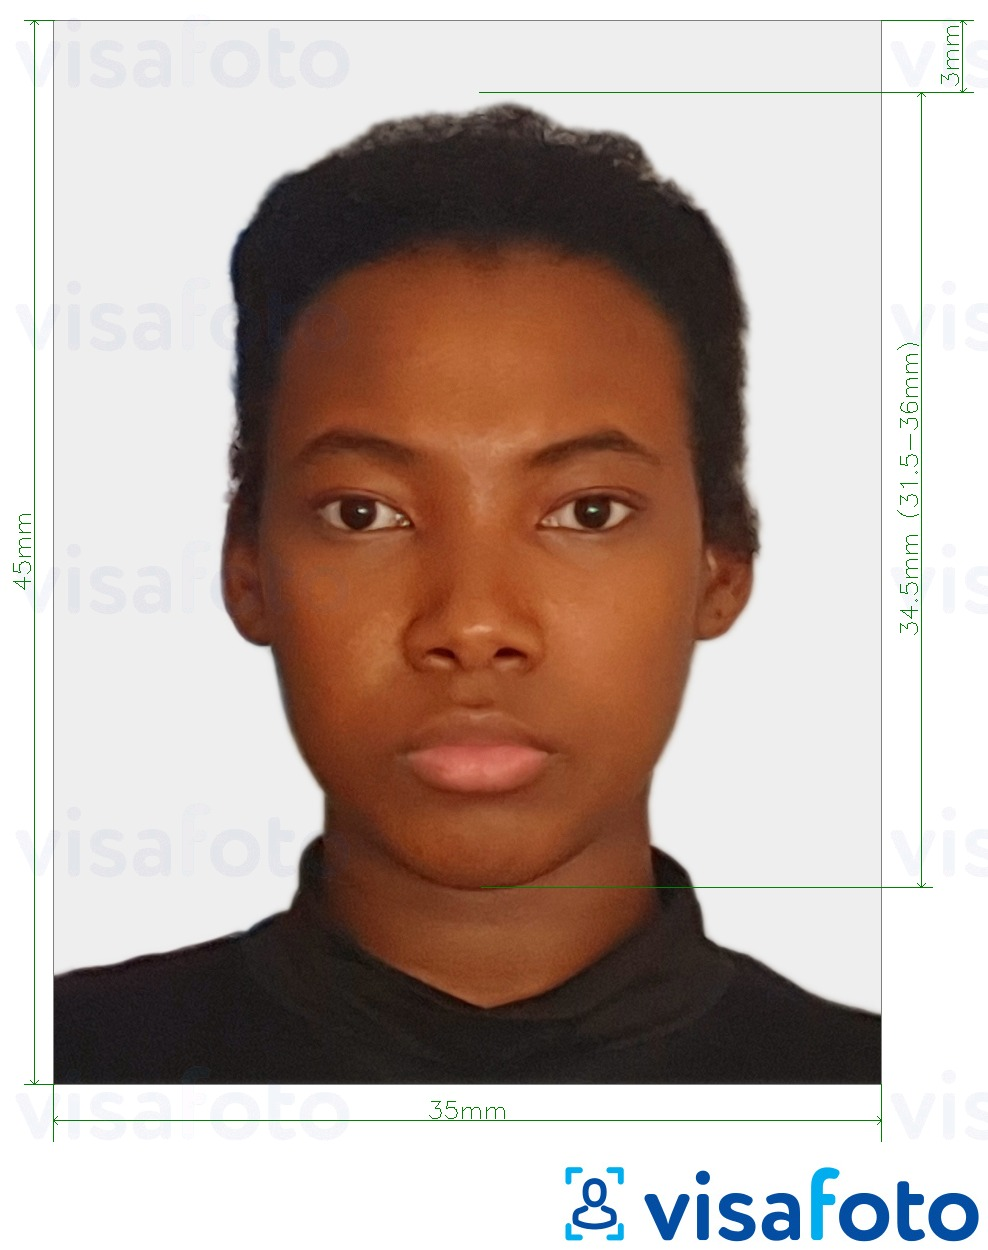 Example of photo for Saint Kitts and Nevis passport photo 35x45 mm (1.77x1.38 inch) with exact size specification